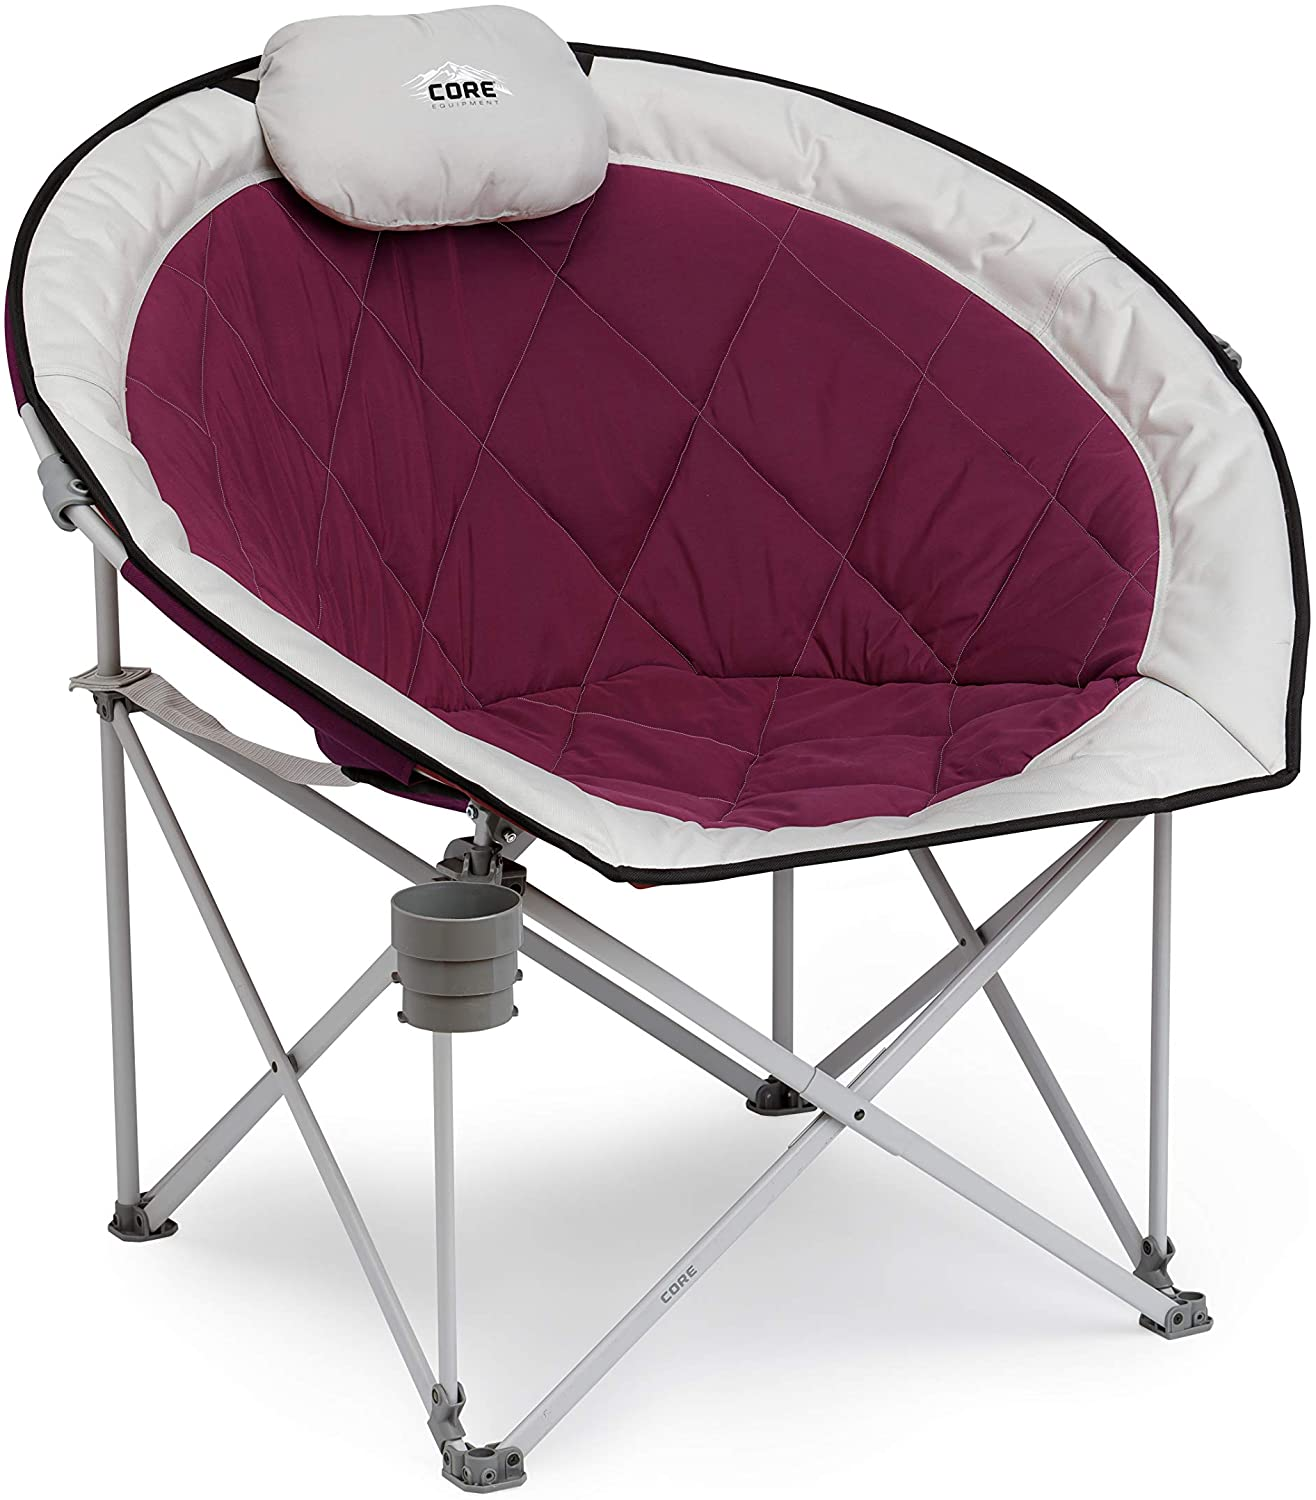 Core Equipment Folding Oversized Padded Denver Mall Round Moon Chair 40% OFF Cheap Sale Saucer